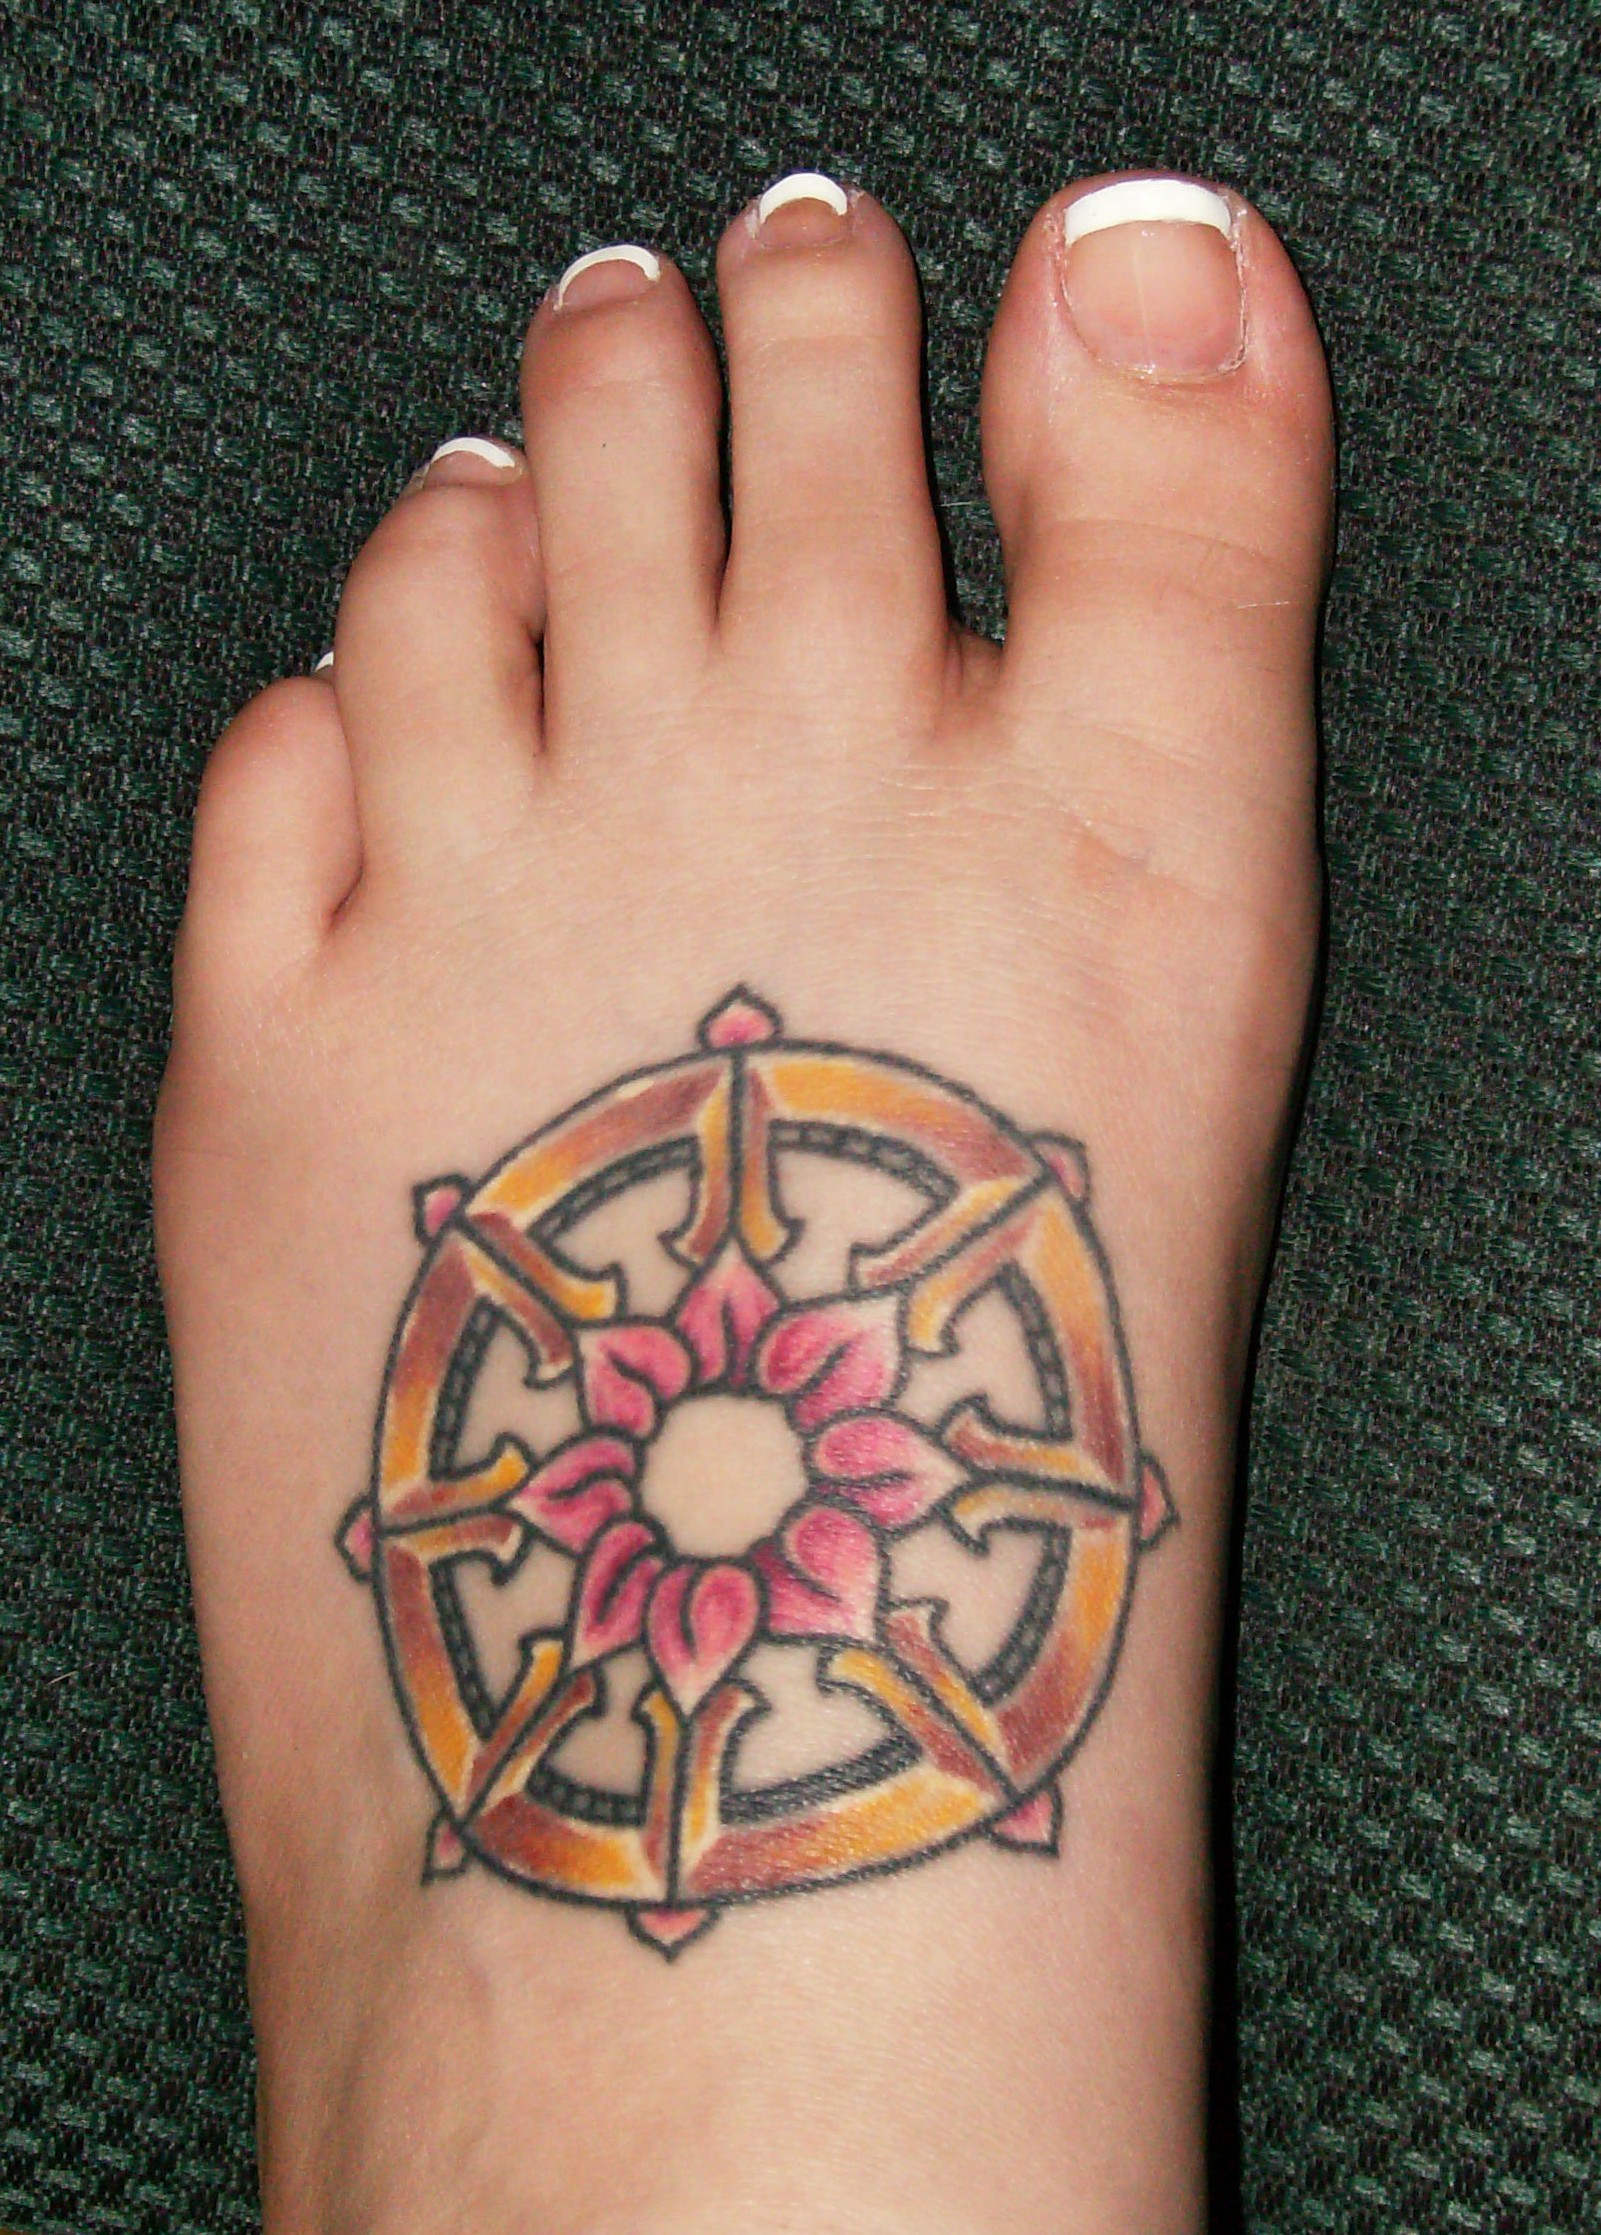 Buddhist Symbols And Meanings For Tattoos 22 Buddhist Tattoo Des...